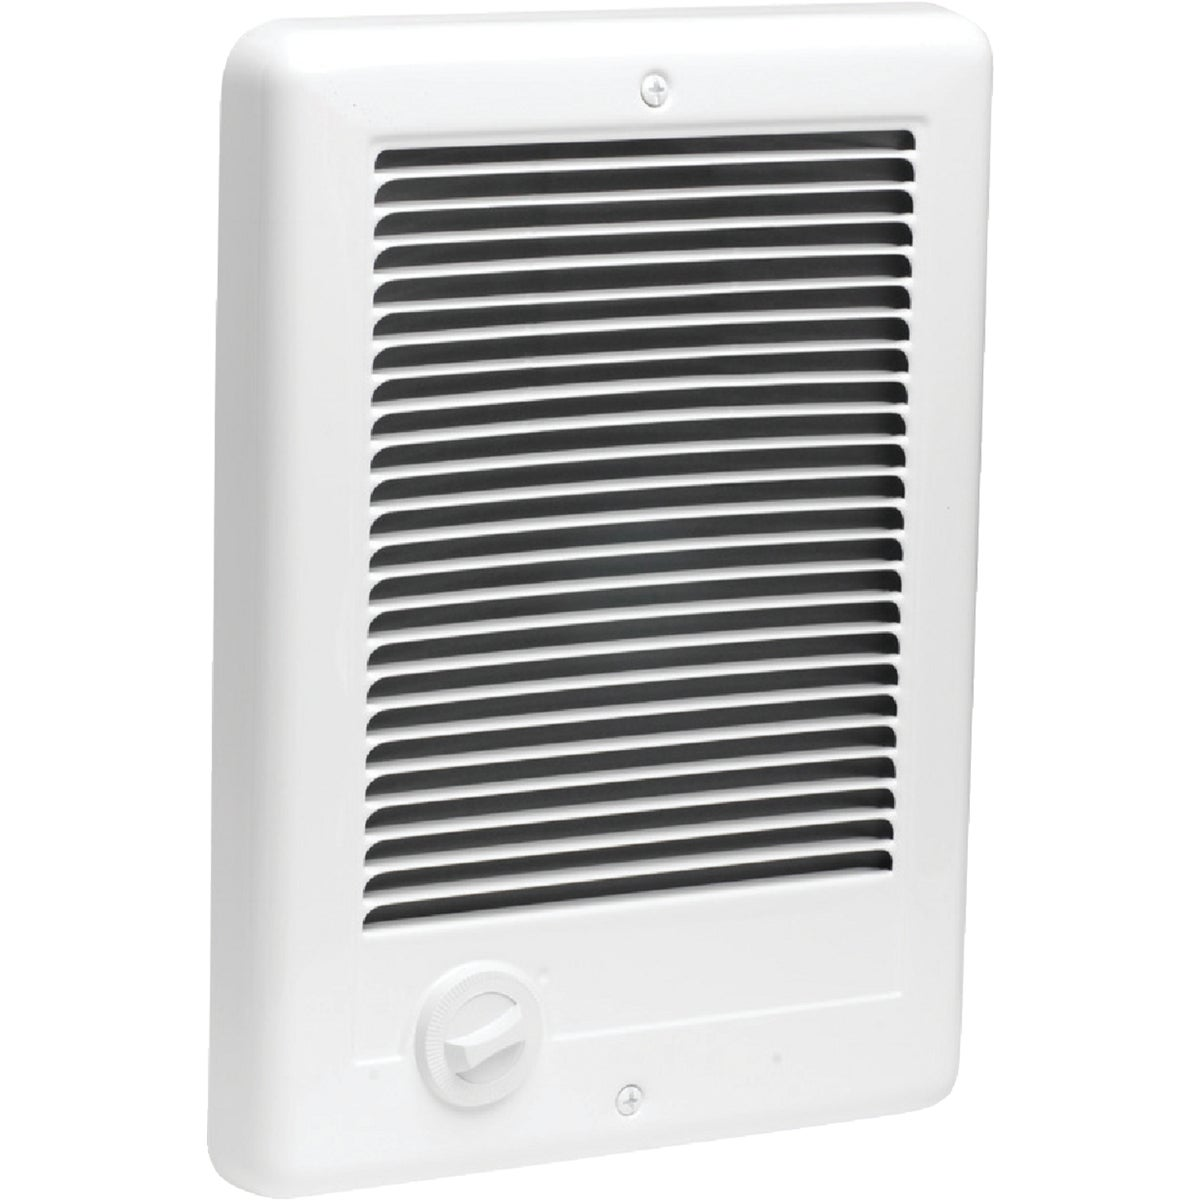 WHT FAN/WALL HEATER - 67506 by Cadet Mfg Co